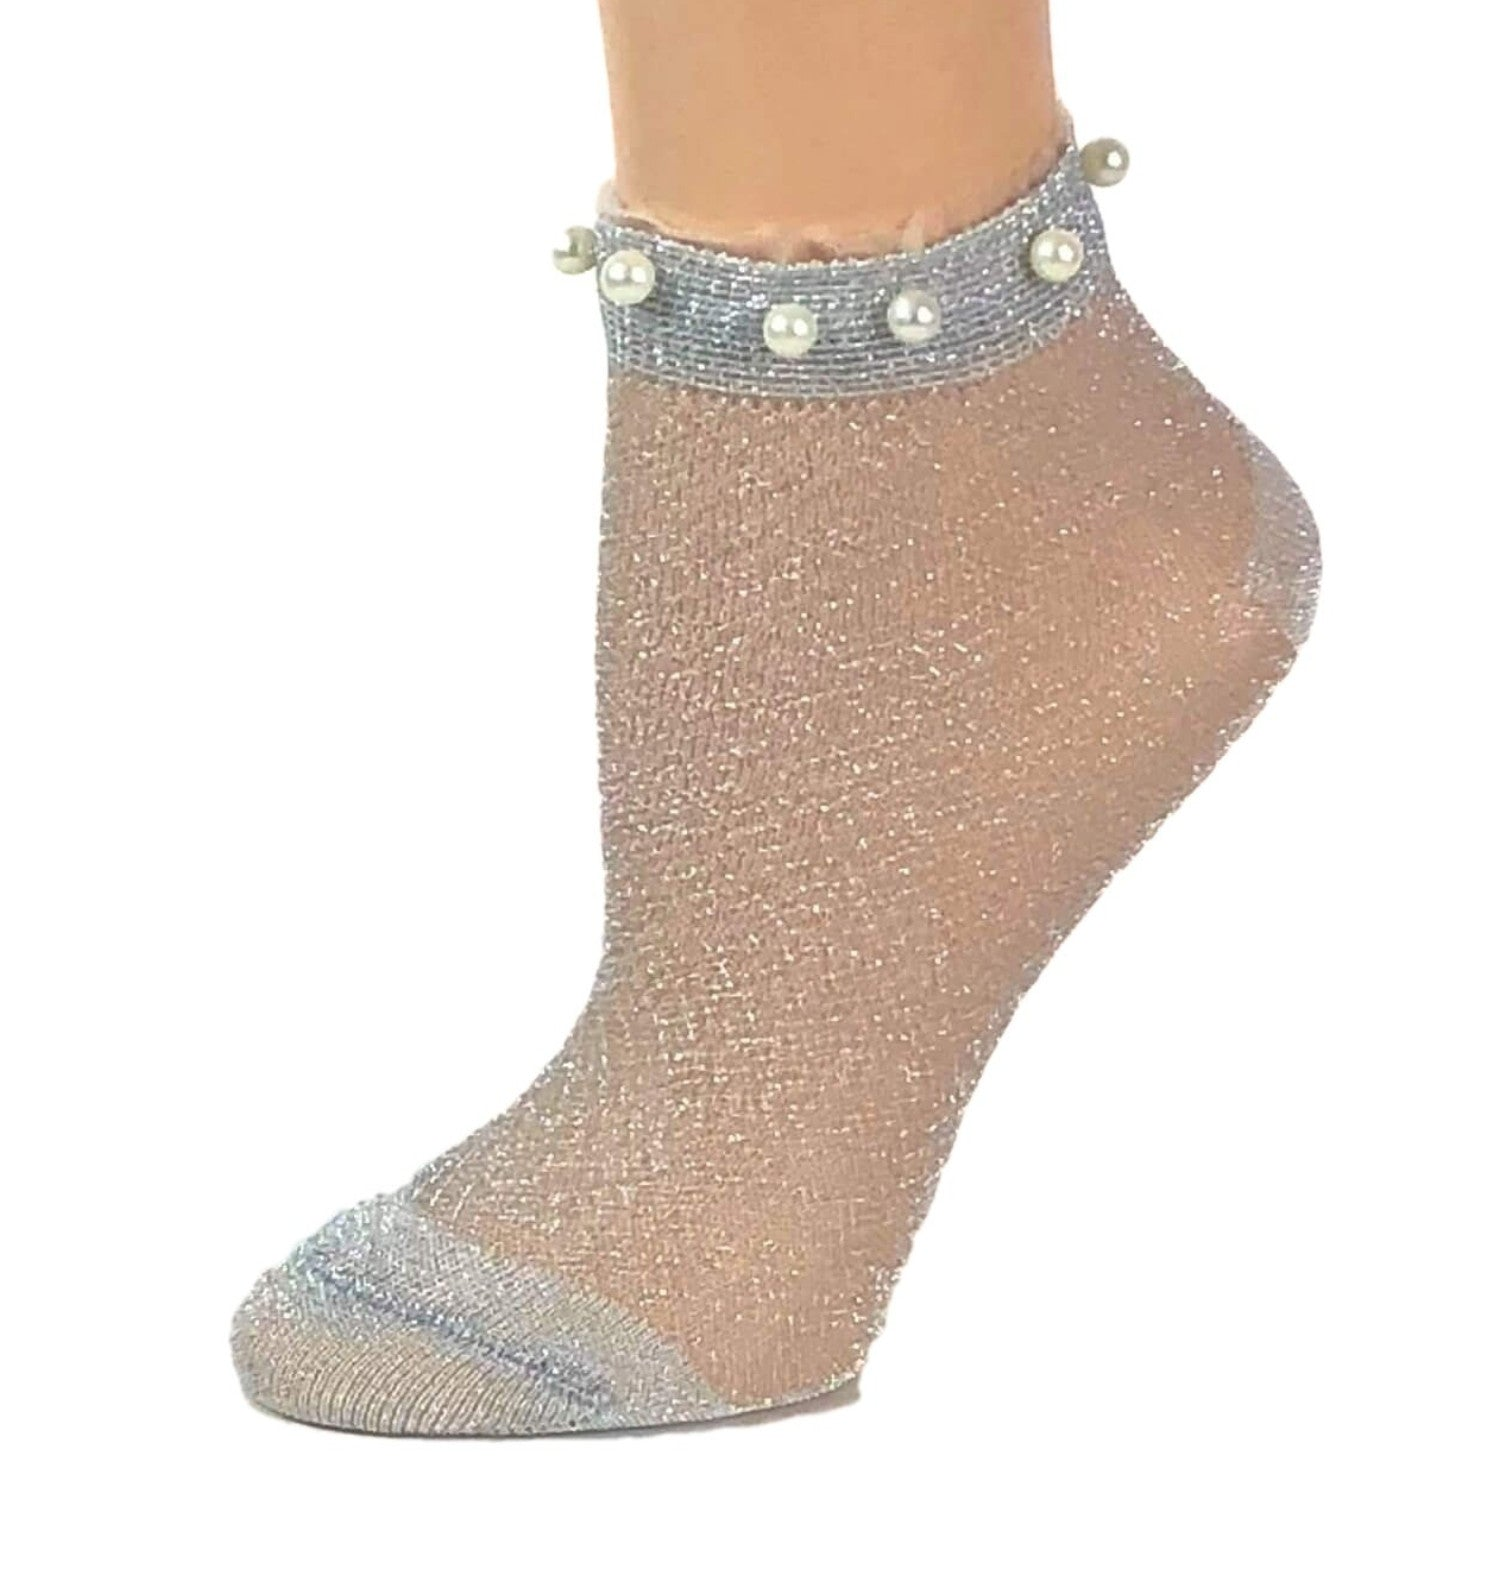 Stunning Pearls Frosted White Glitter Socks